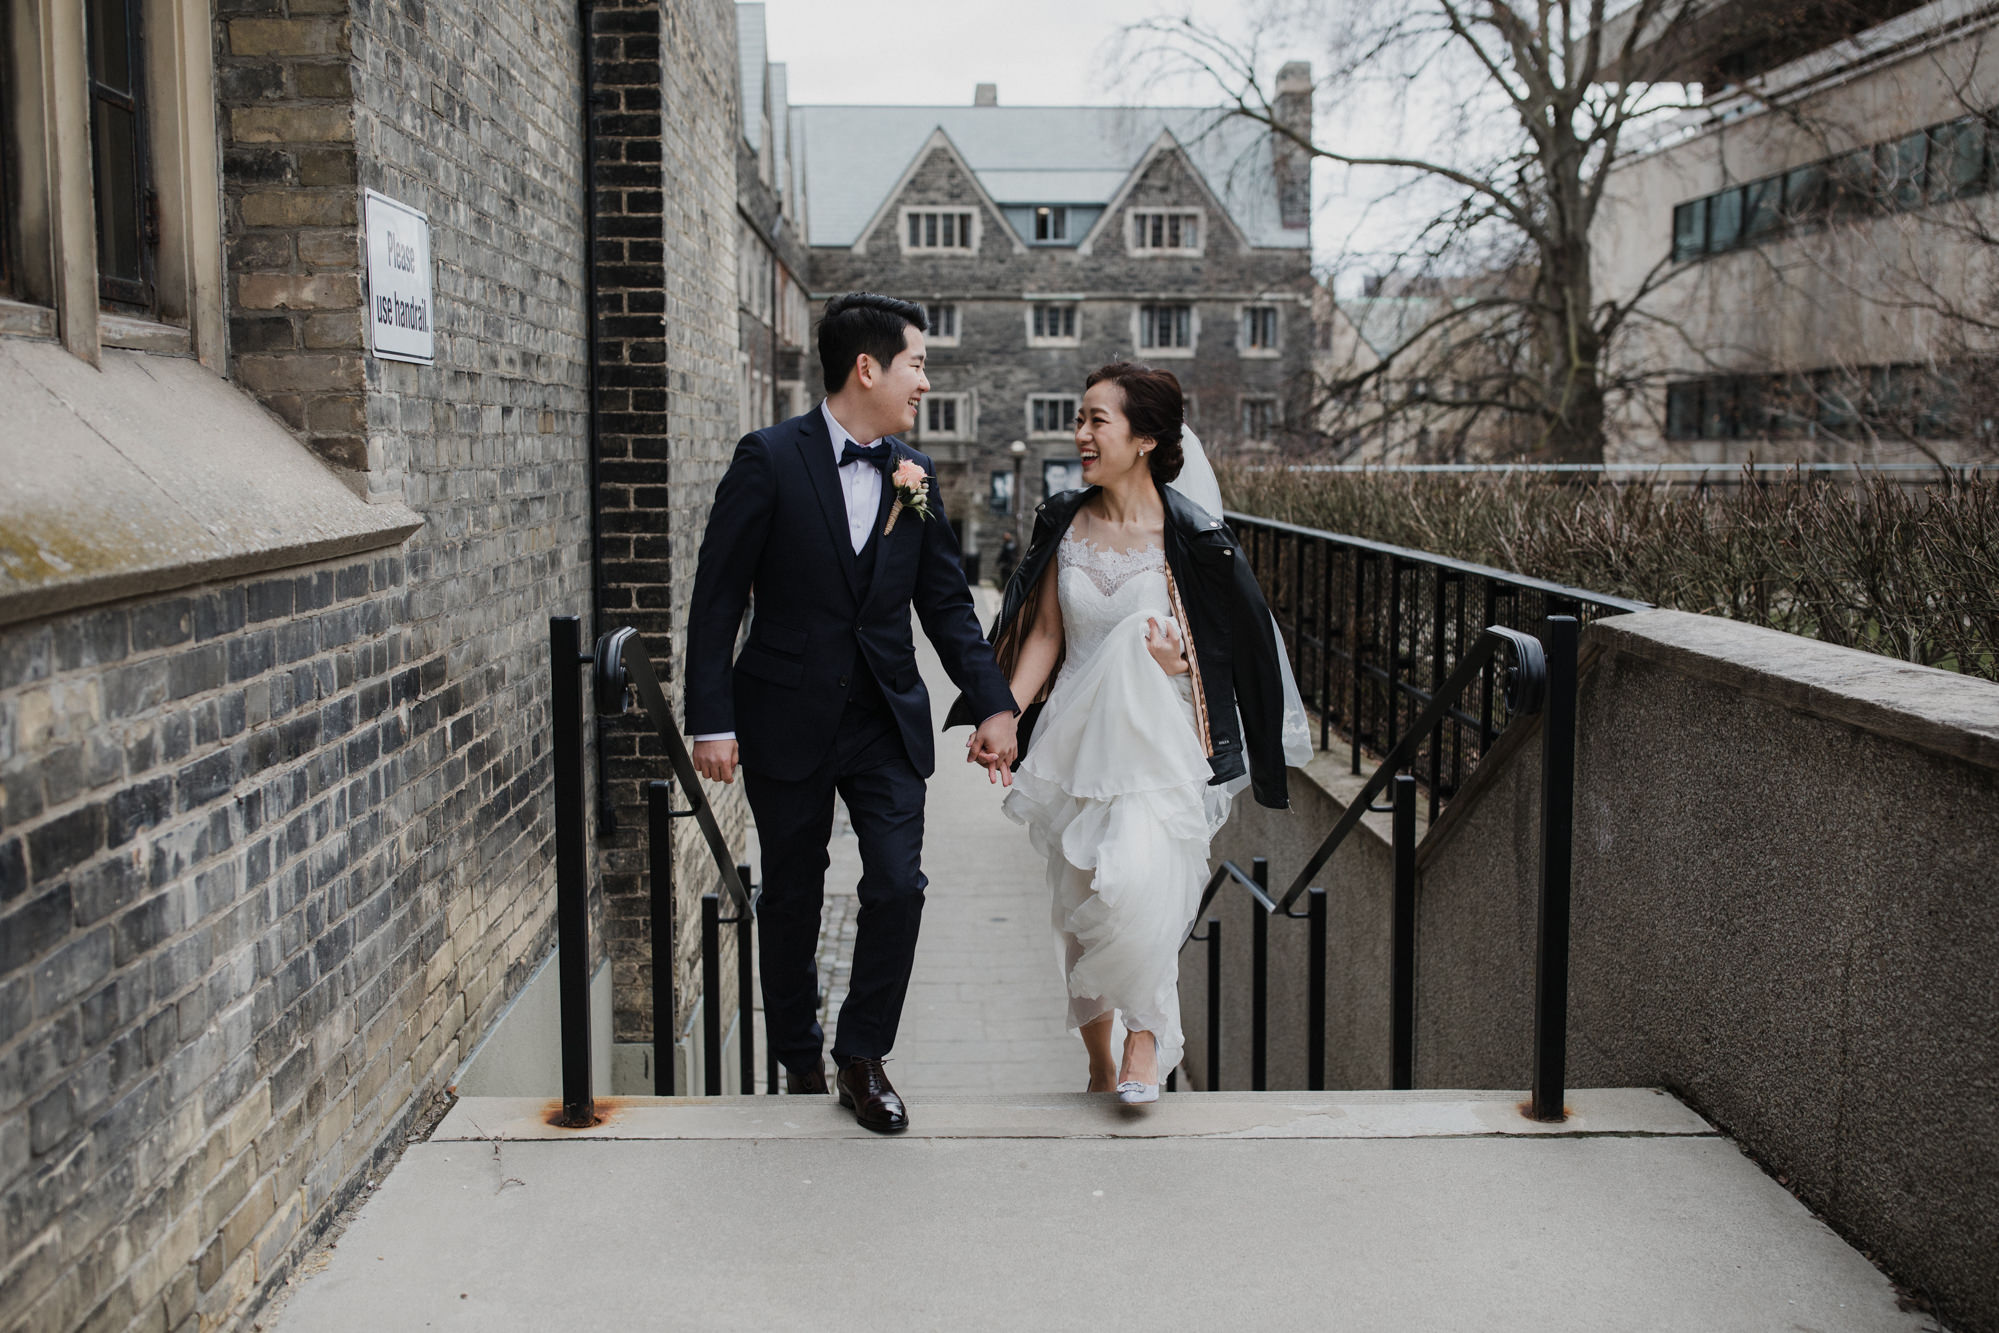 Toronto wedding photographer + Couple portrait + University of Toronto